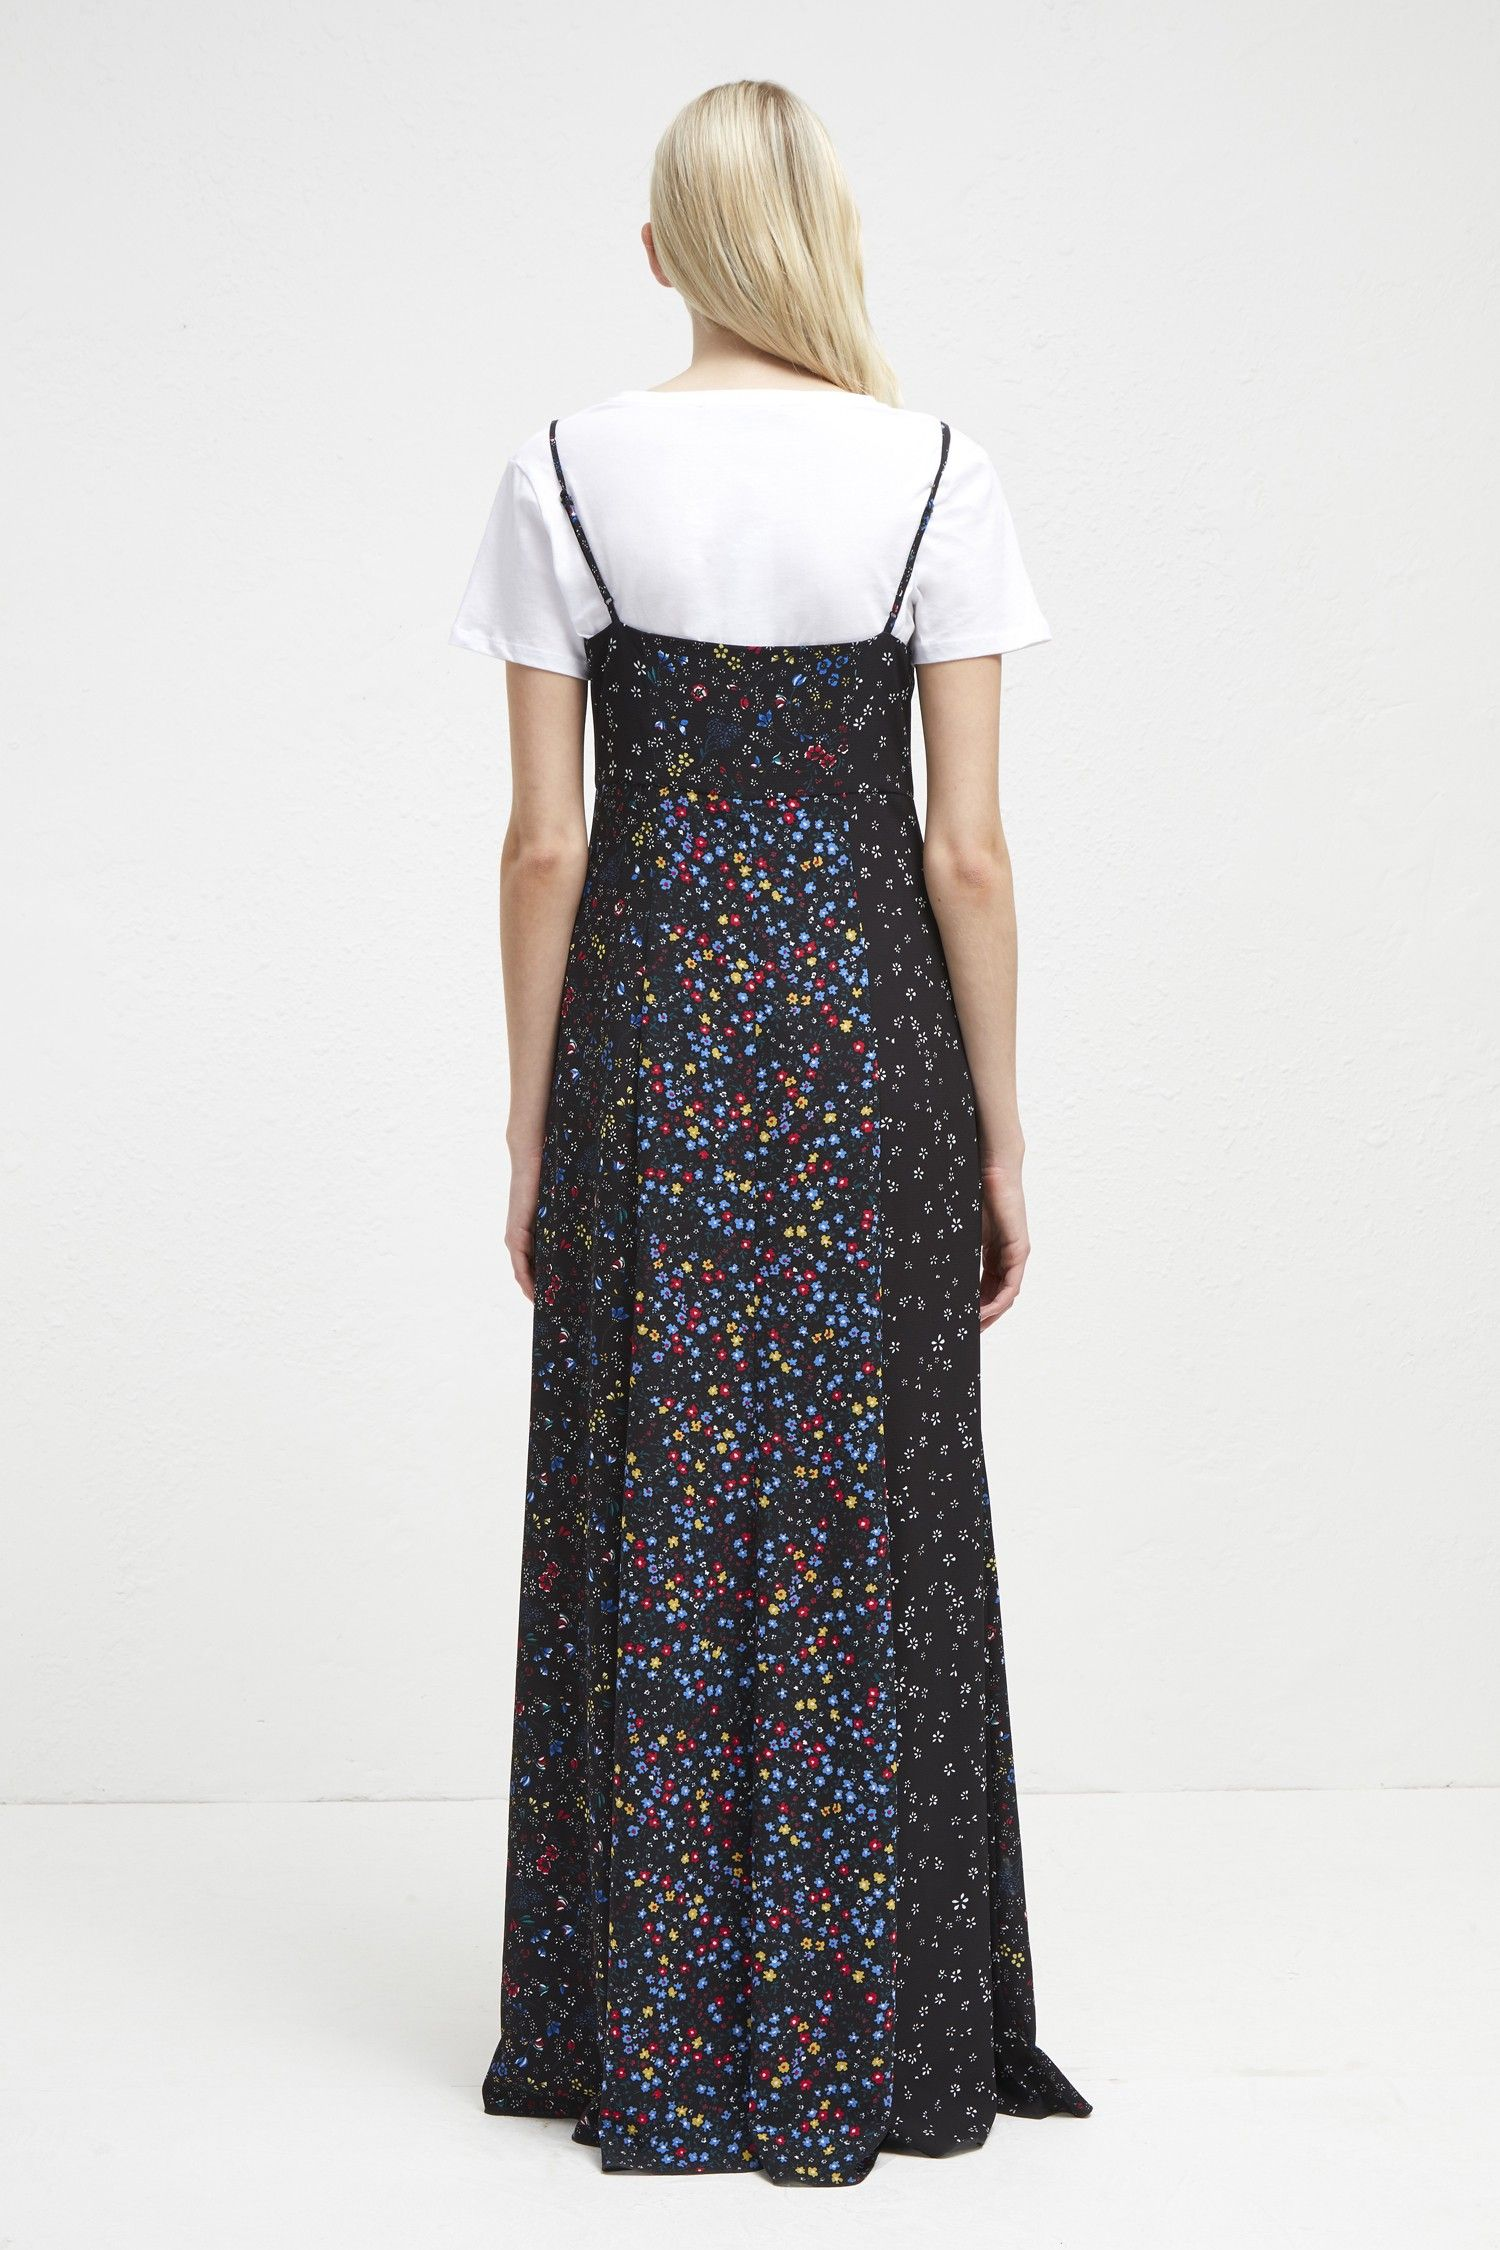 901798c232a French Connection Aubine Fluid Floral Strappy Maxi Dress - 0 ...